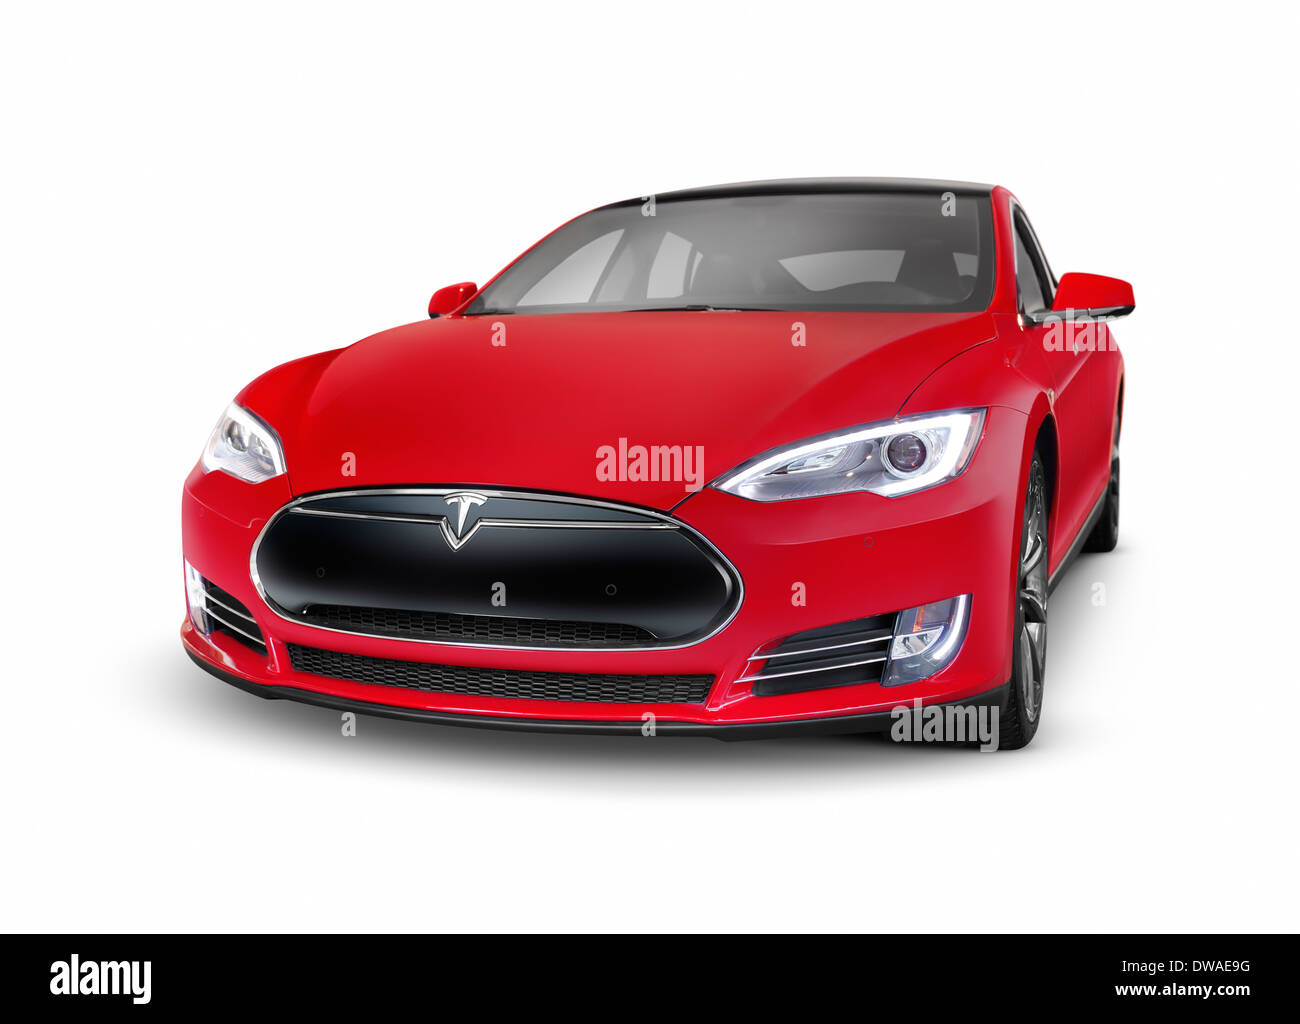 Red 2014 Tesla Model S luxury electric car premium sedan isolated on white background with clipping path - Stock Image